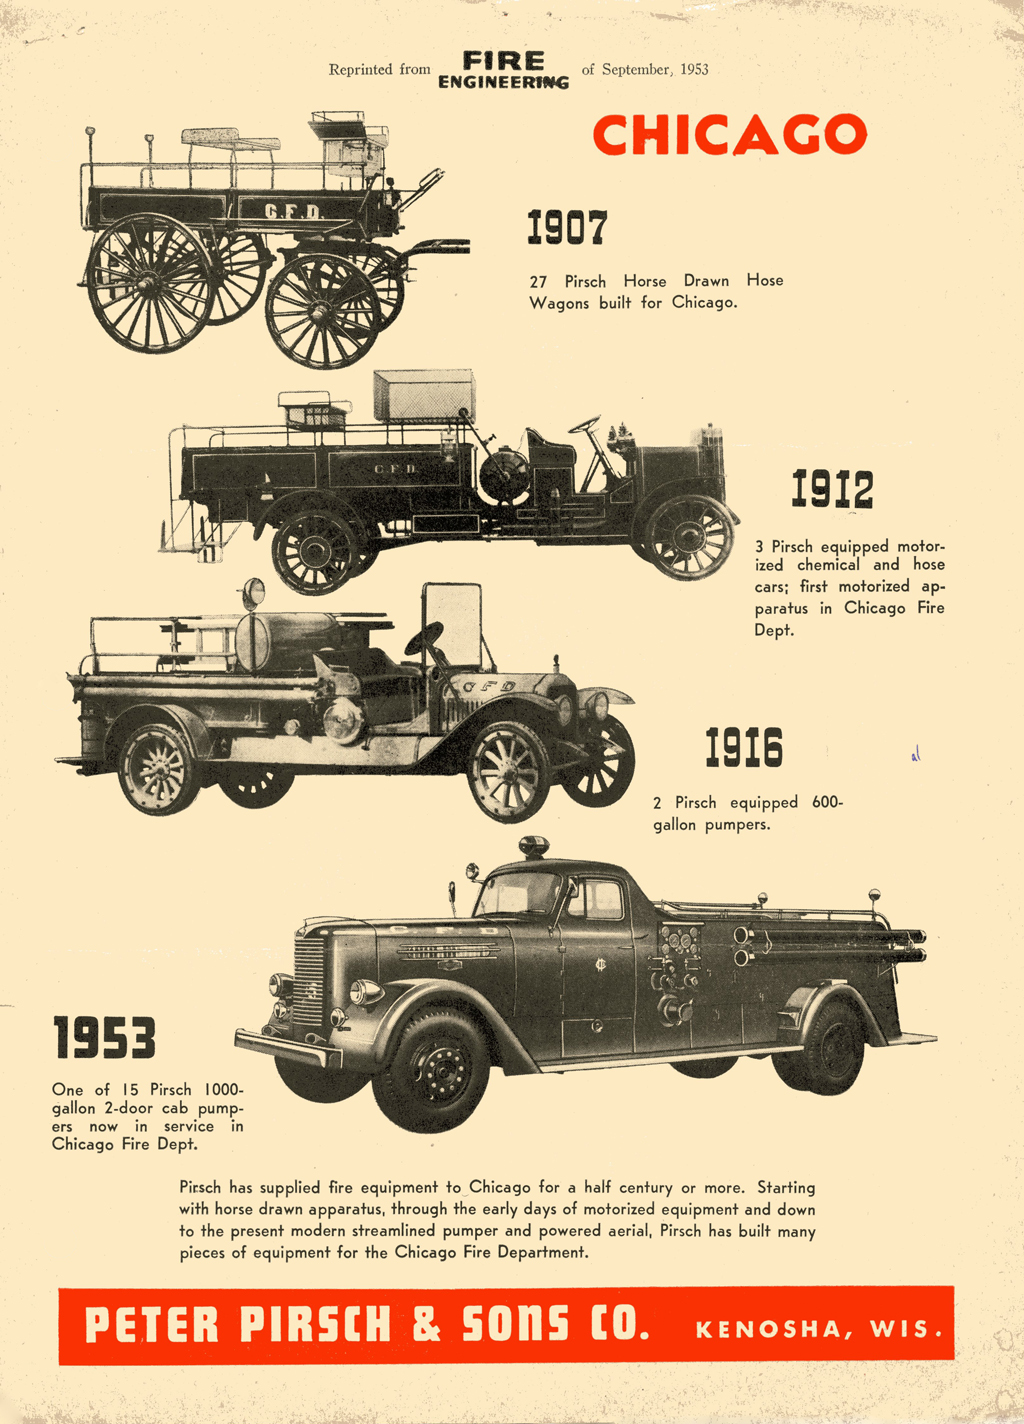 Peter Pirsch & Sons Co ad from 1953 Fire Engineering Magazine